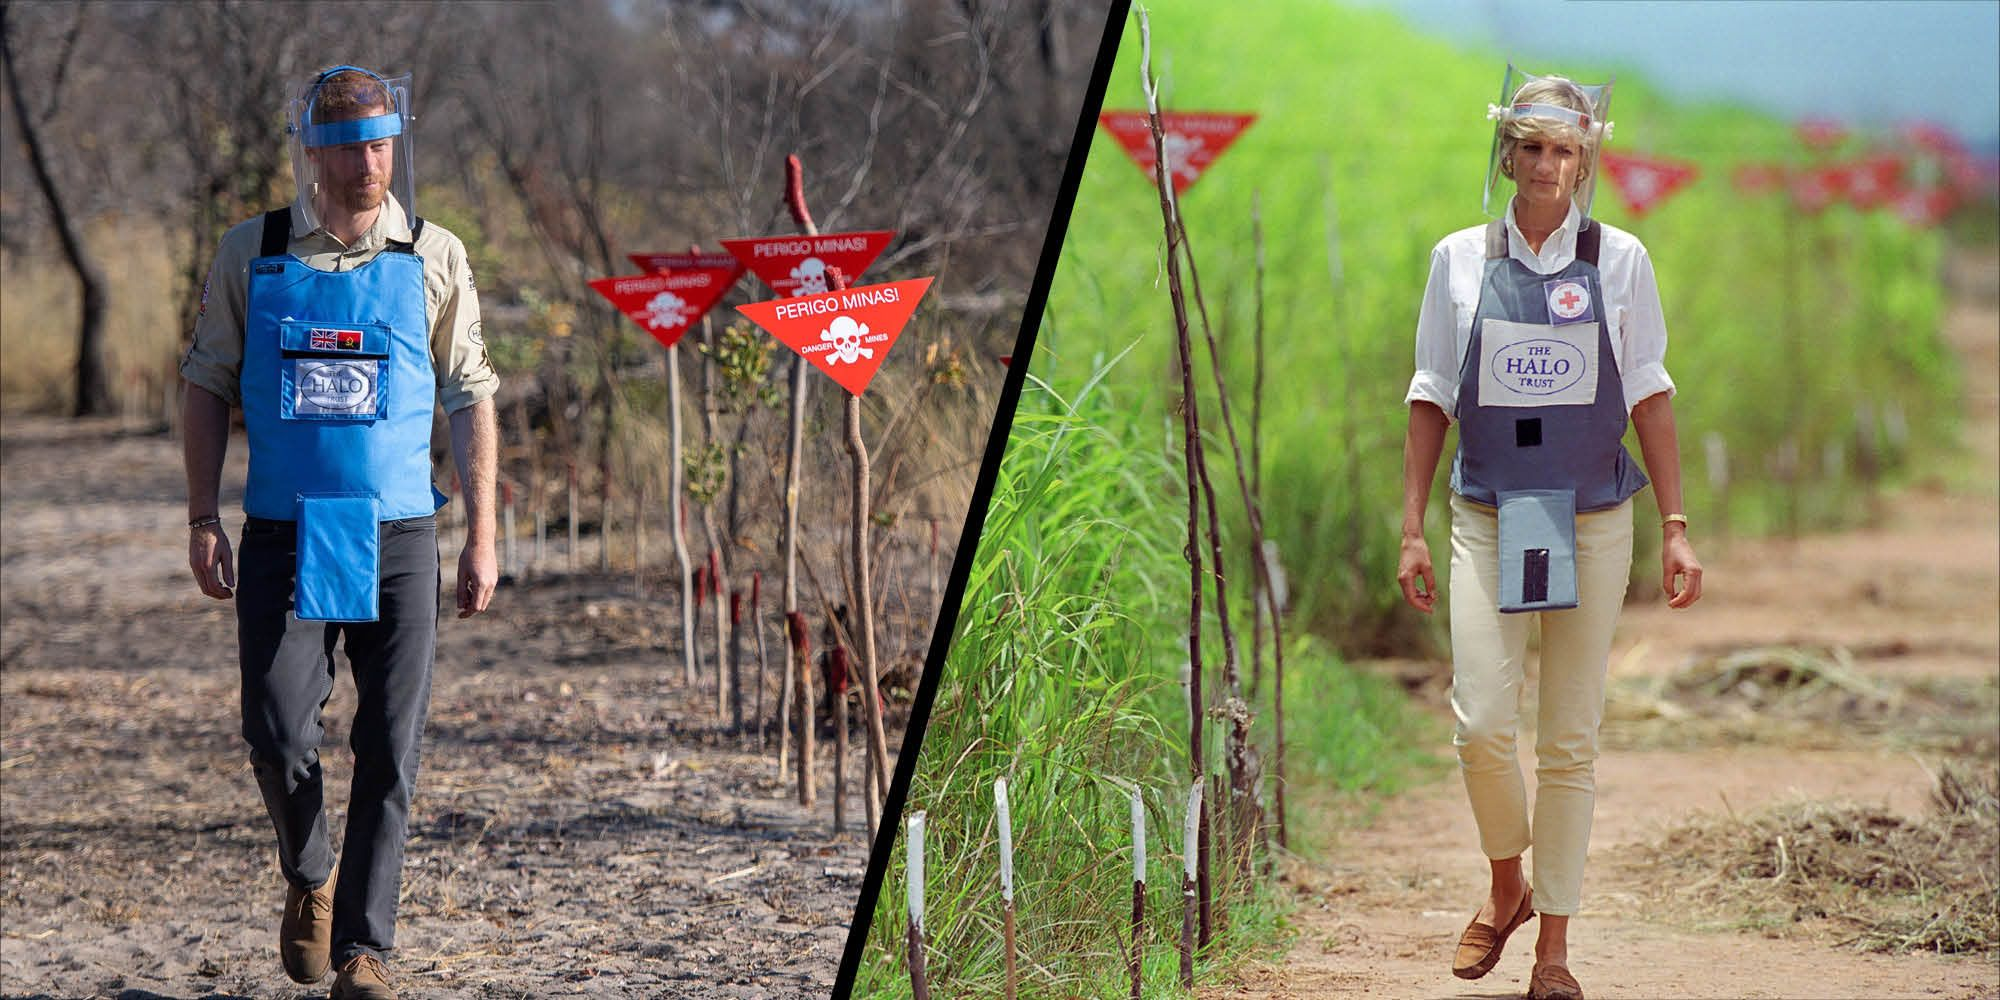 Duke of Sussex retraces the steps of Diana, Princess of Wales at Angola landmine field